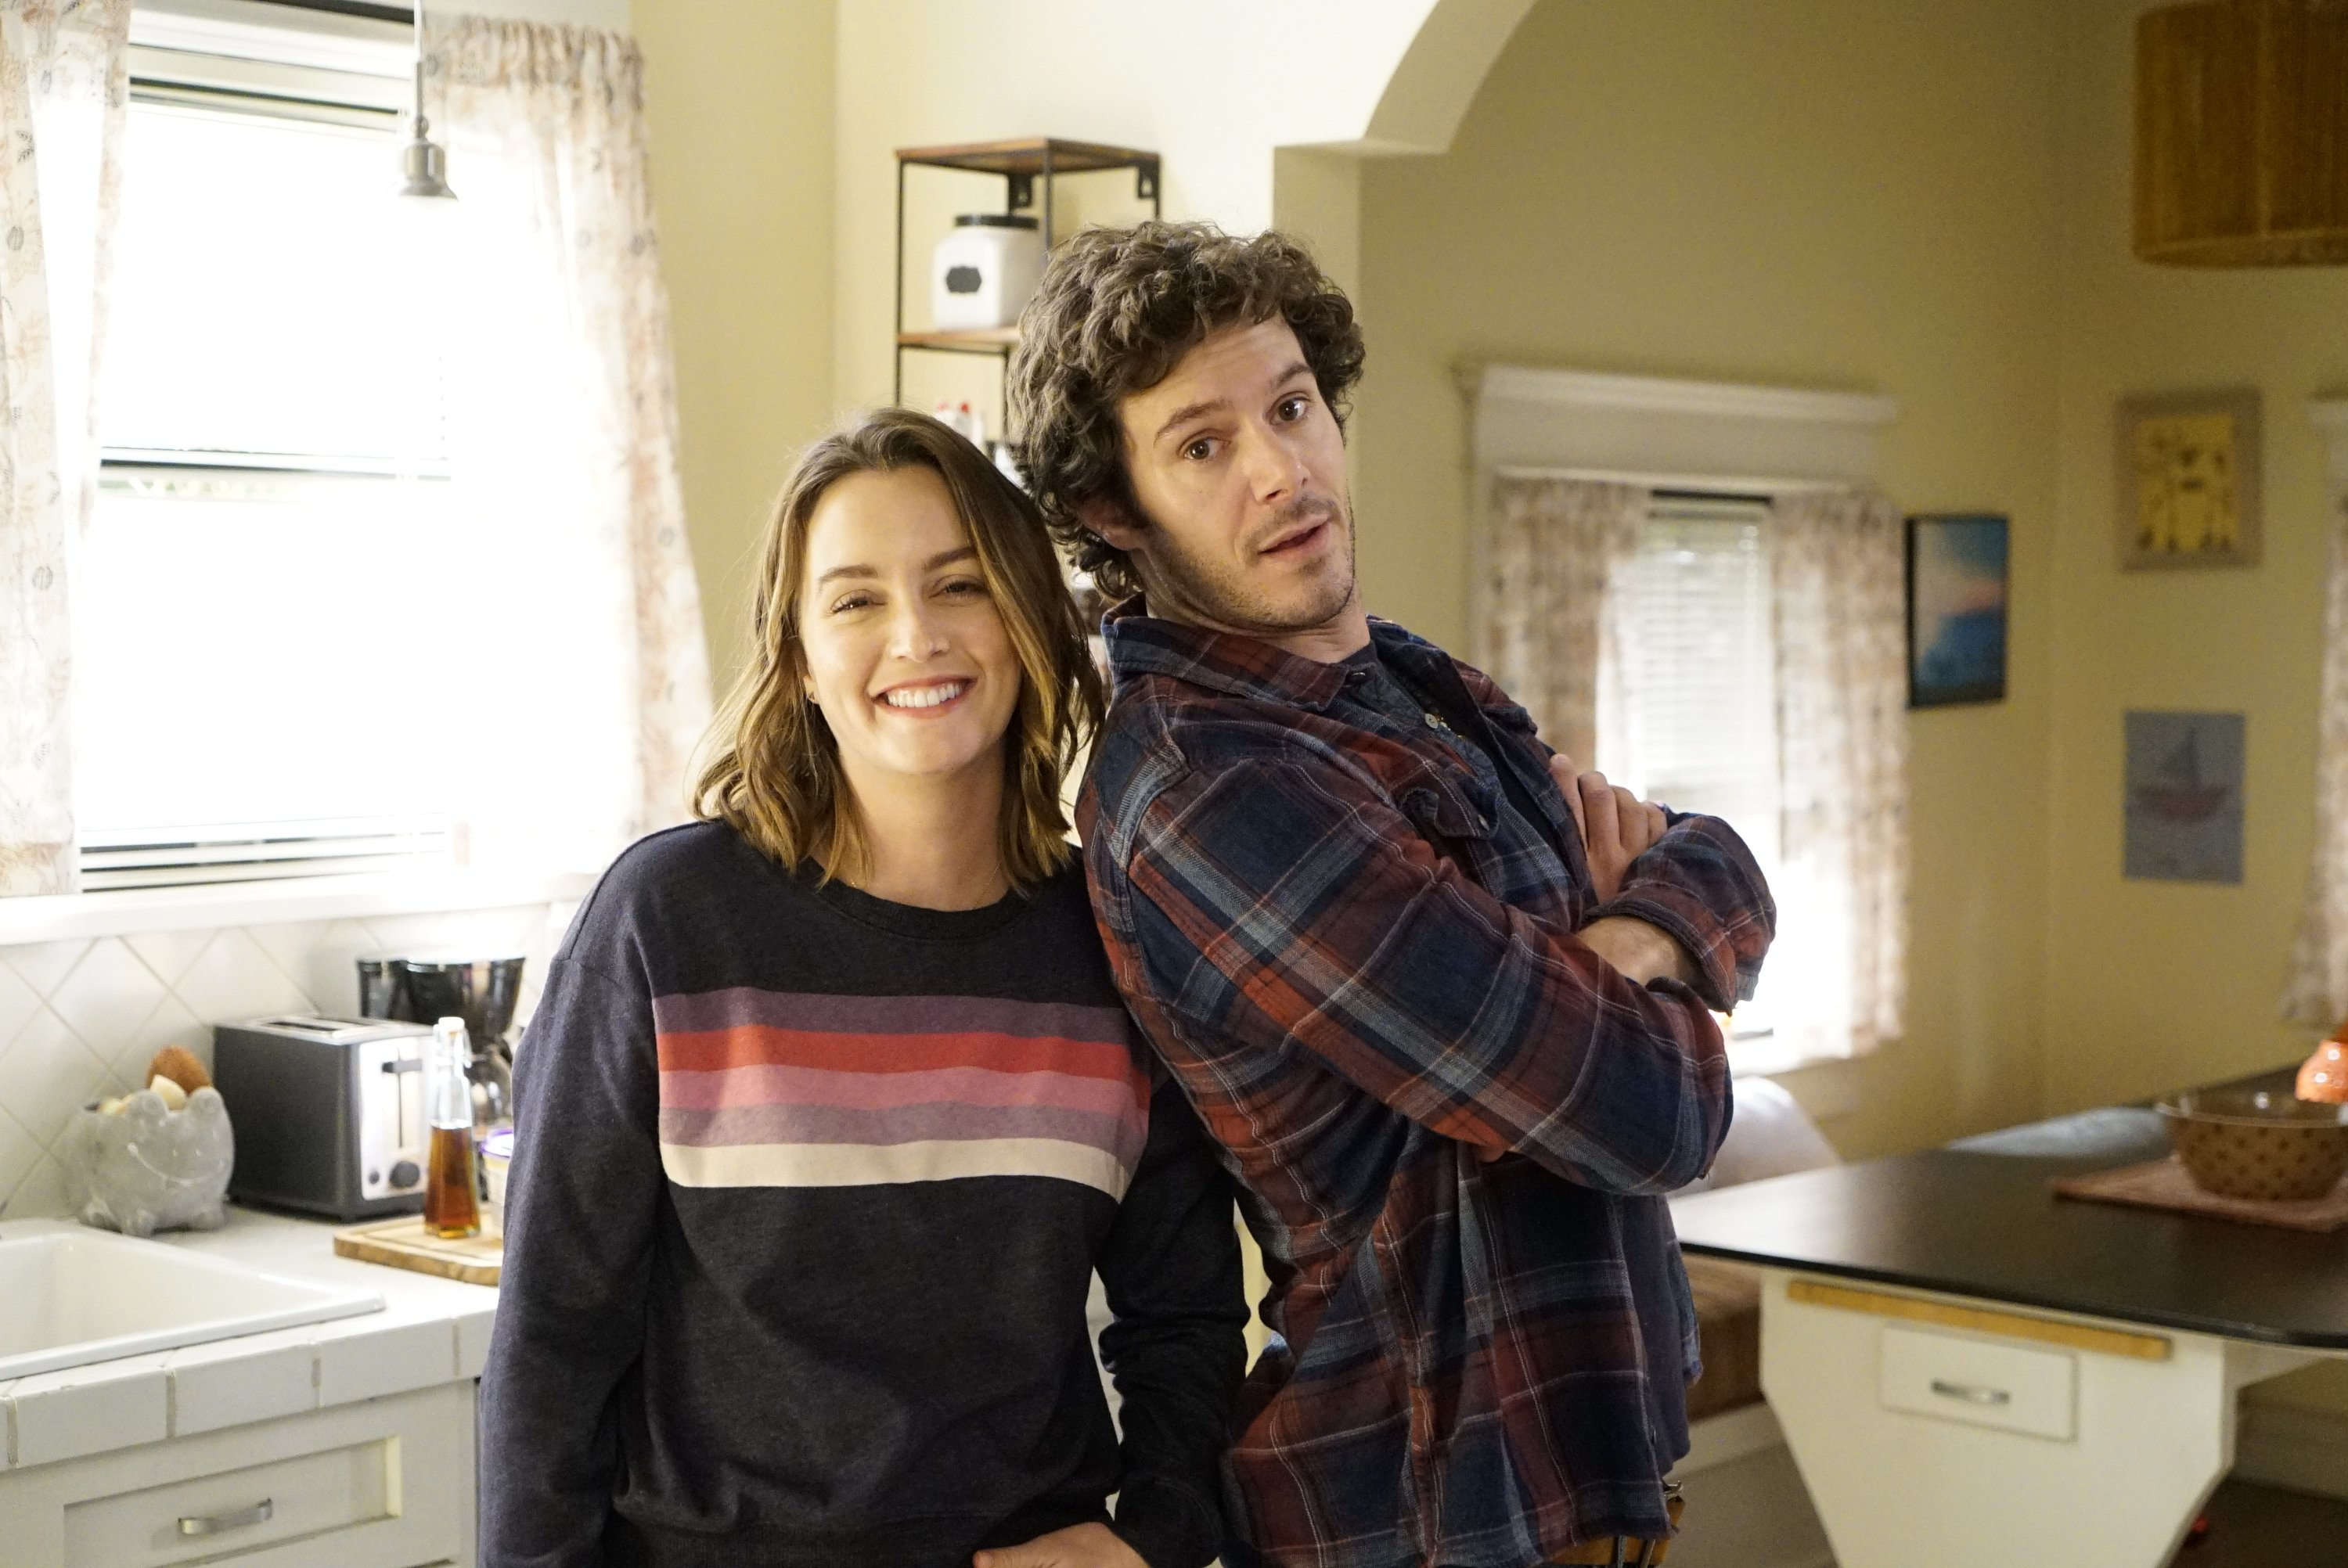 Adam Brody and Leighton Meester on the set of ABC's 'Single Parents', 2019 | Source: Getty Images